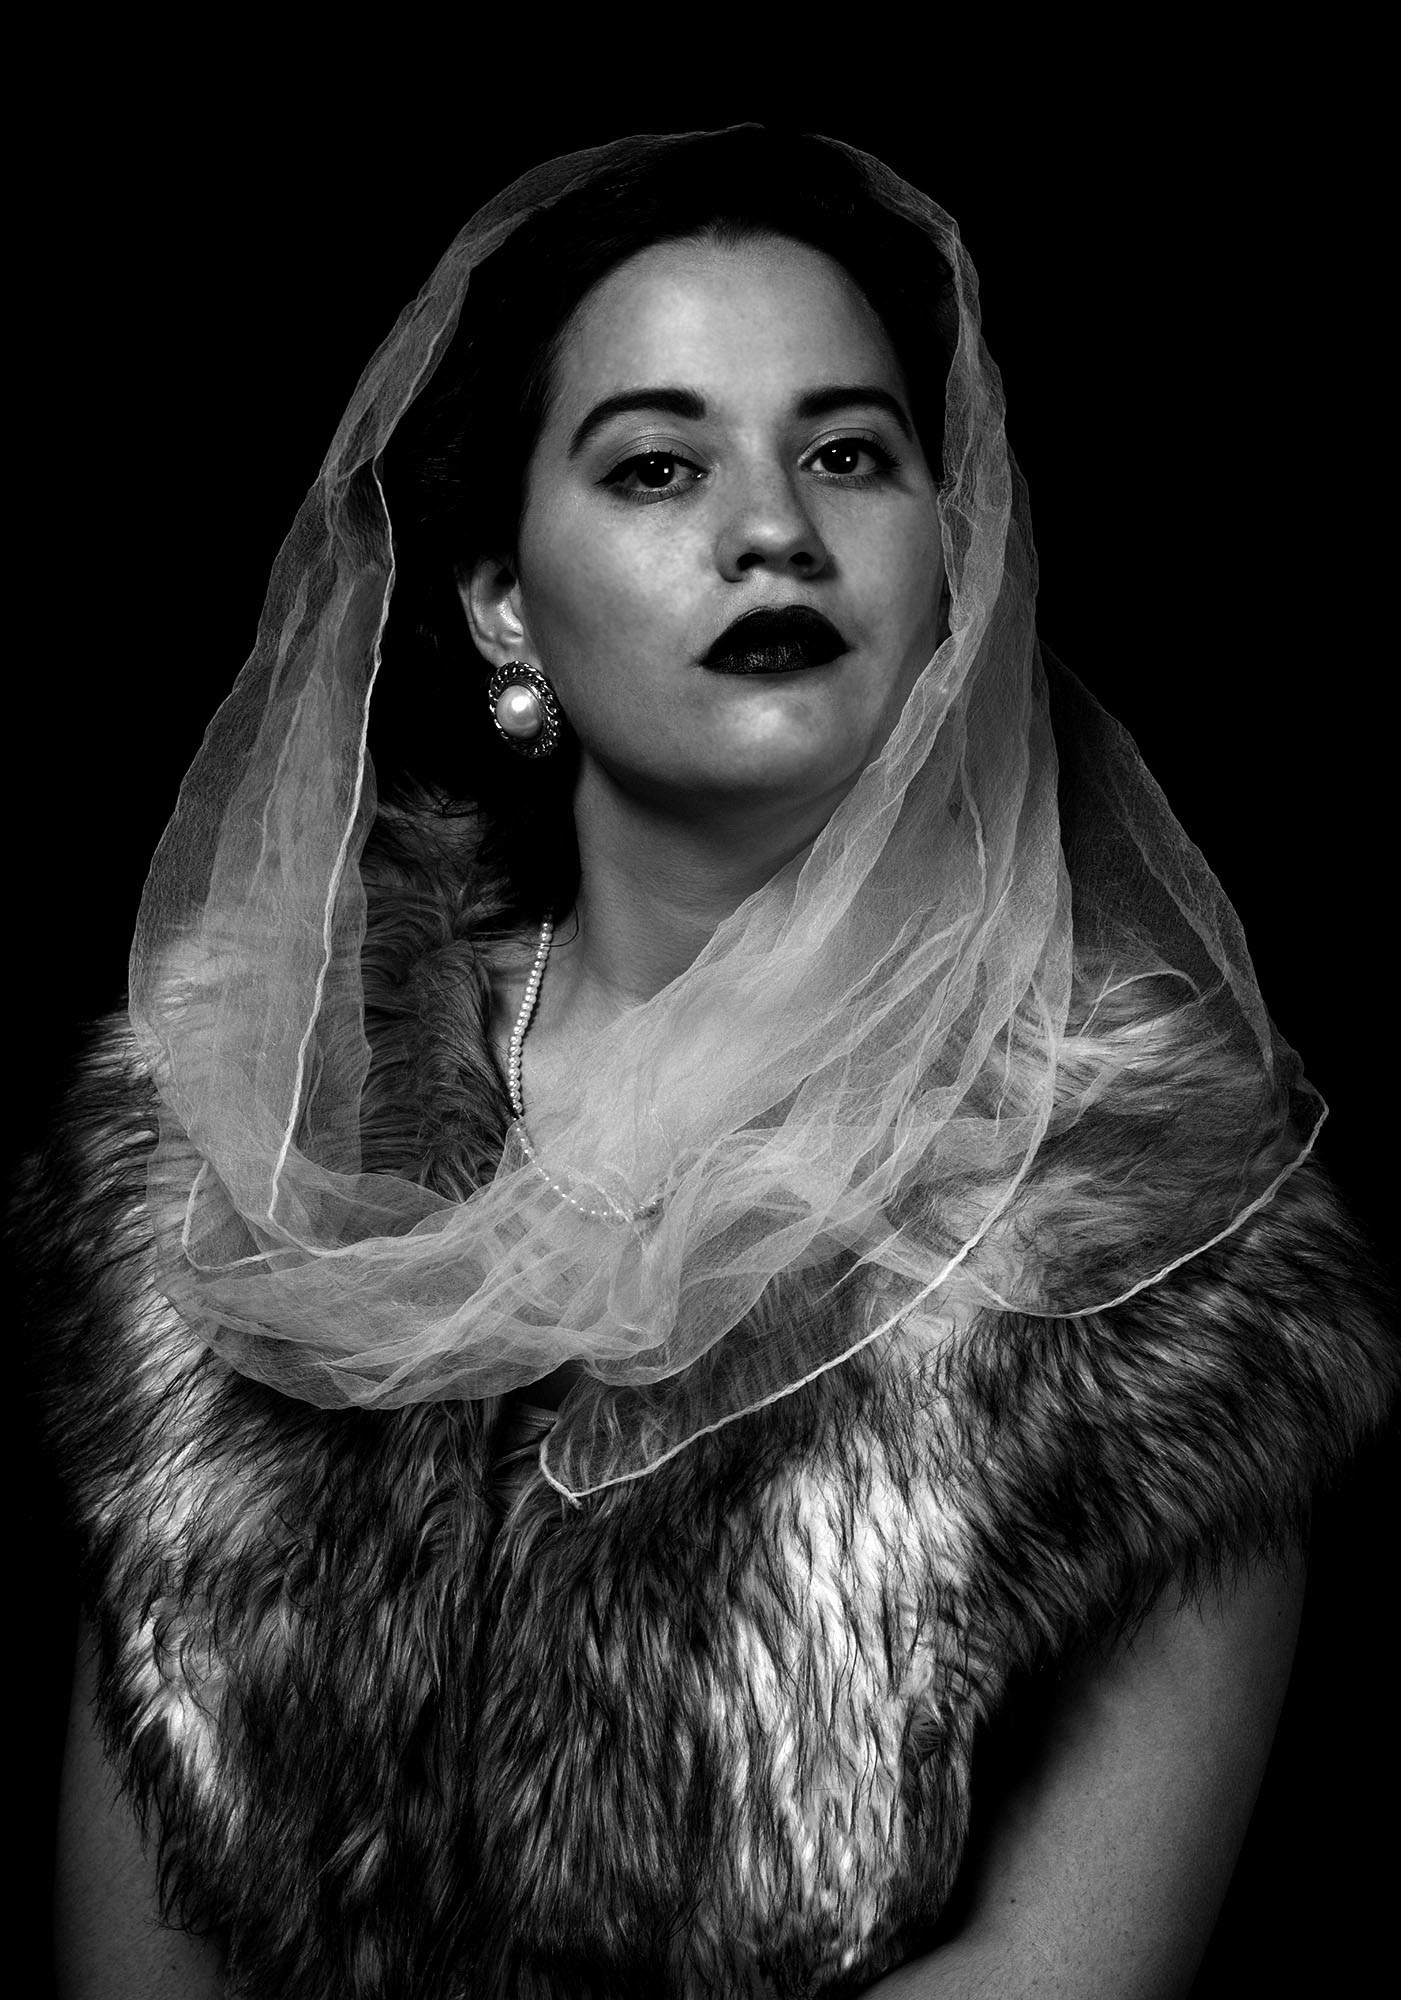 old hollywood lighting. The Objective Of This Project Was To Recreate Famous Old Hollywood Portrait Lighting Setups.